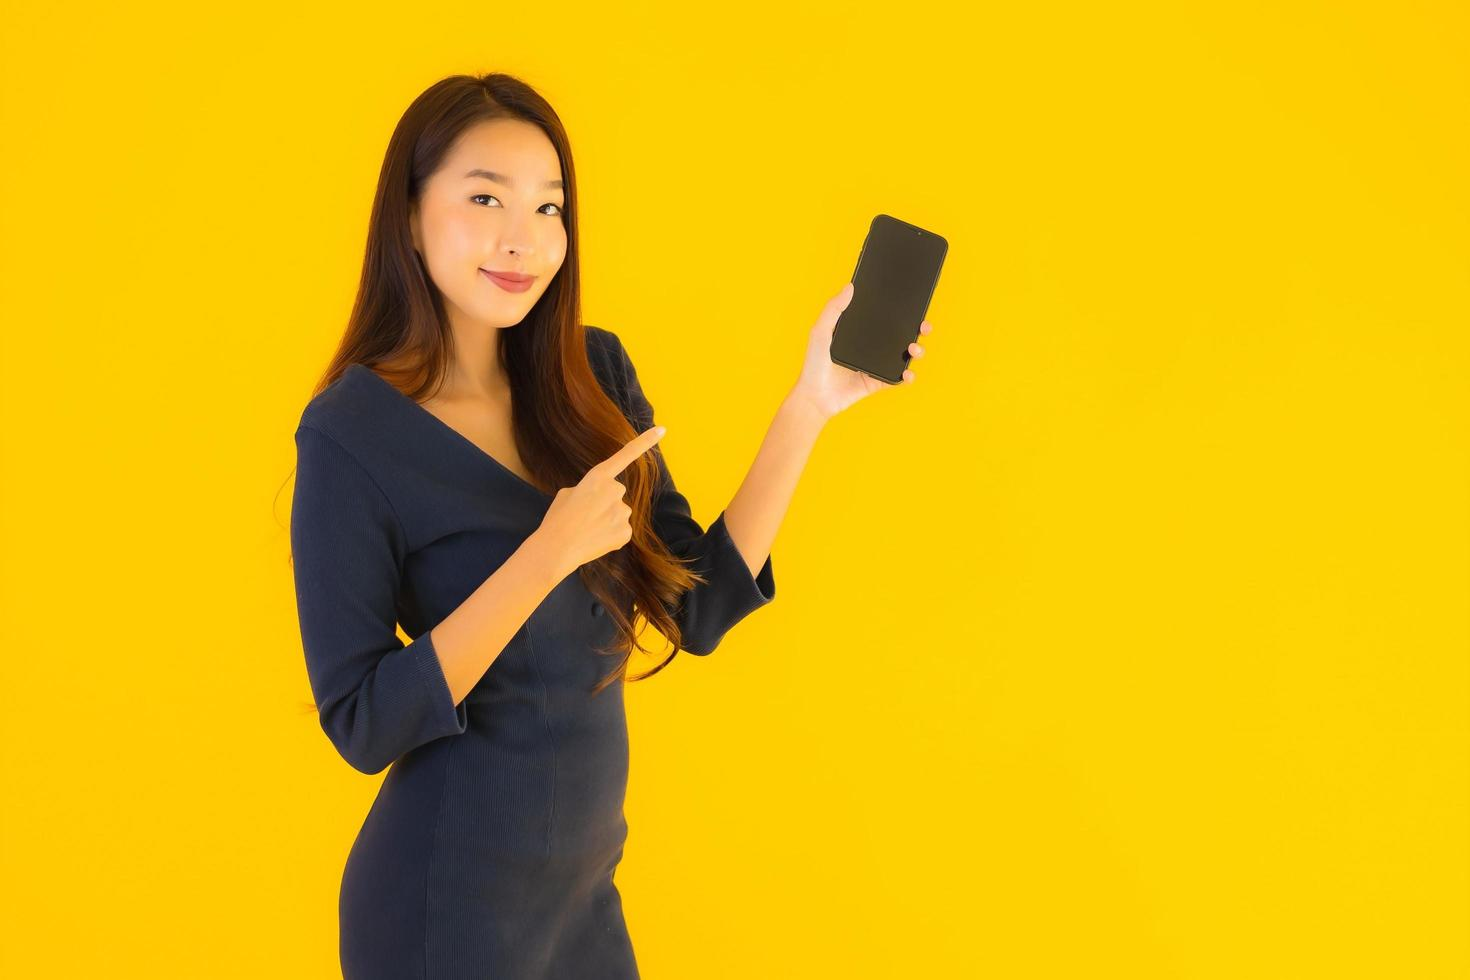 Woman pointing to phone photo